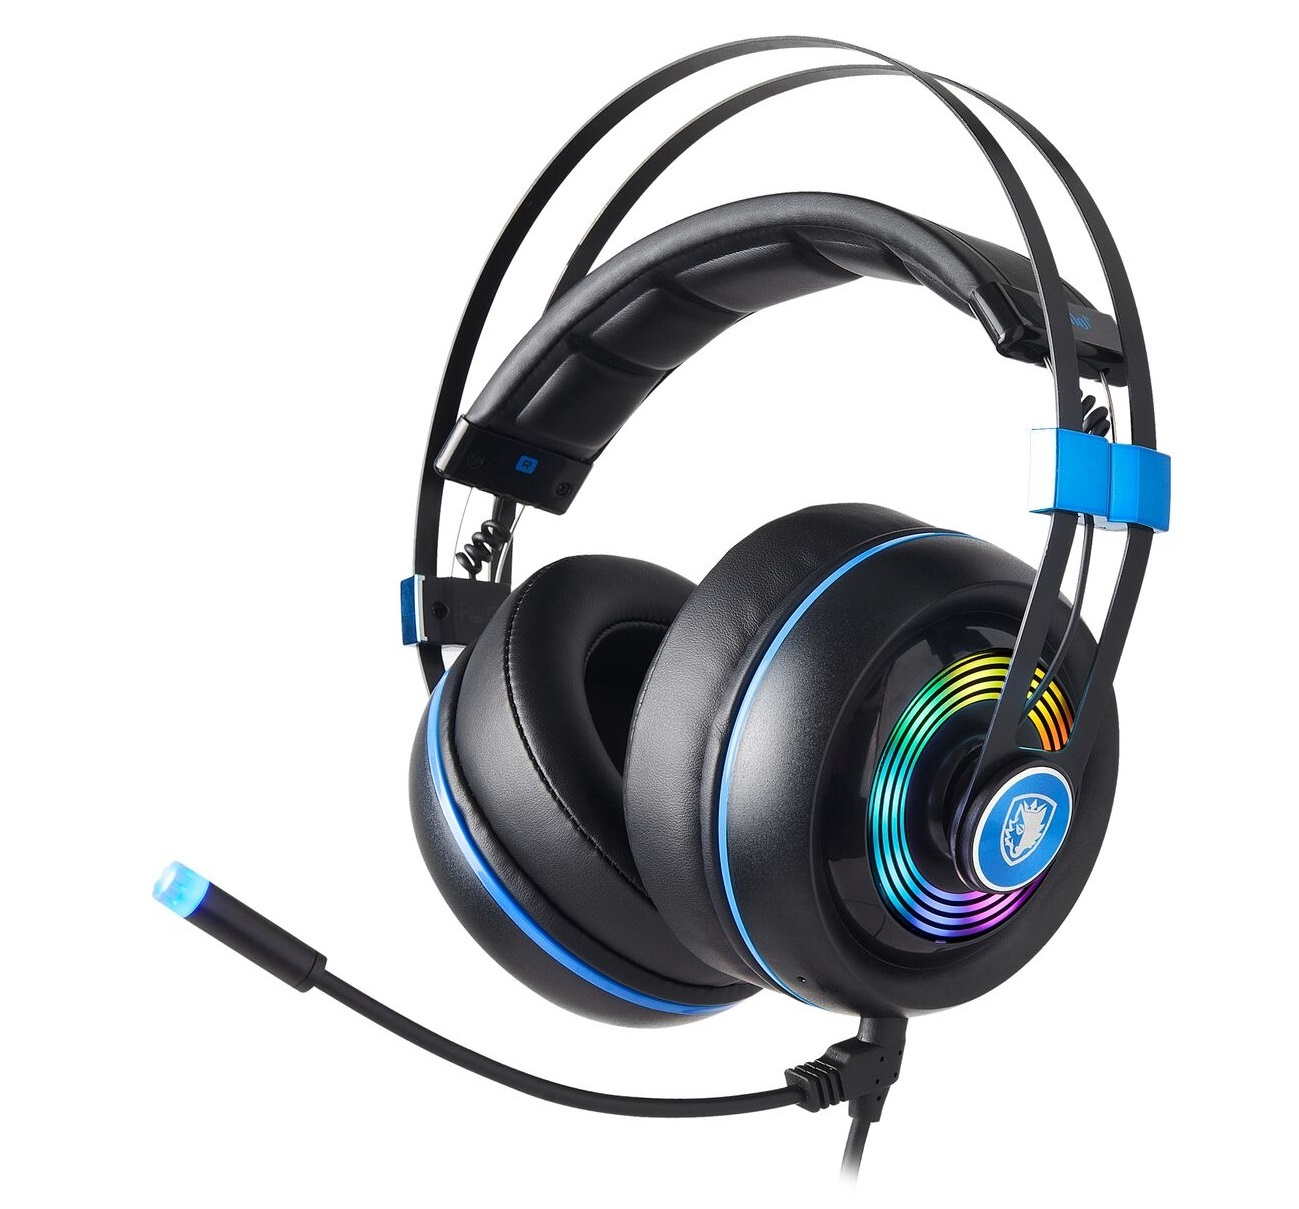 SADES Armor Gaming Headset for PC image